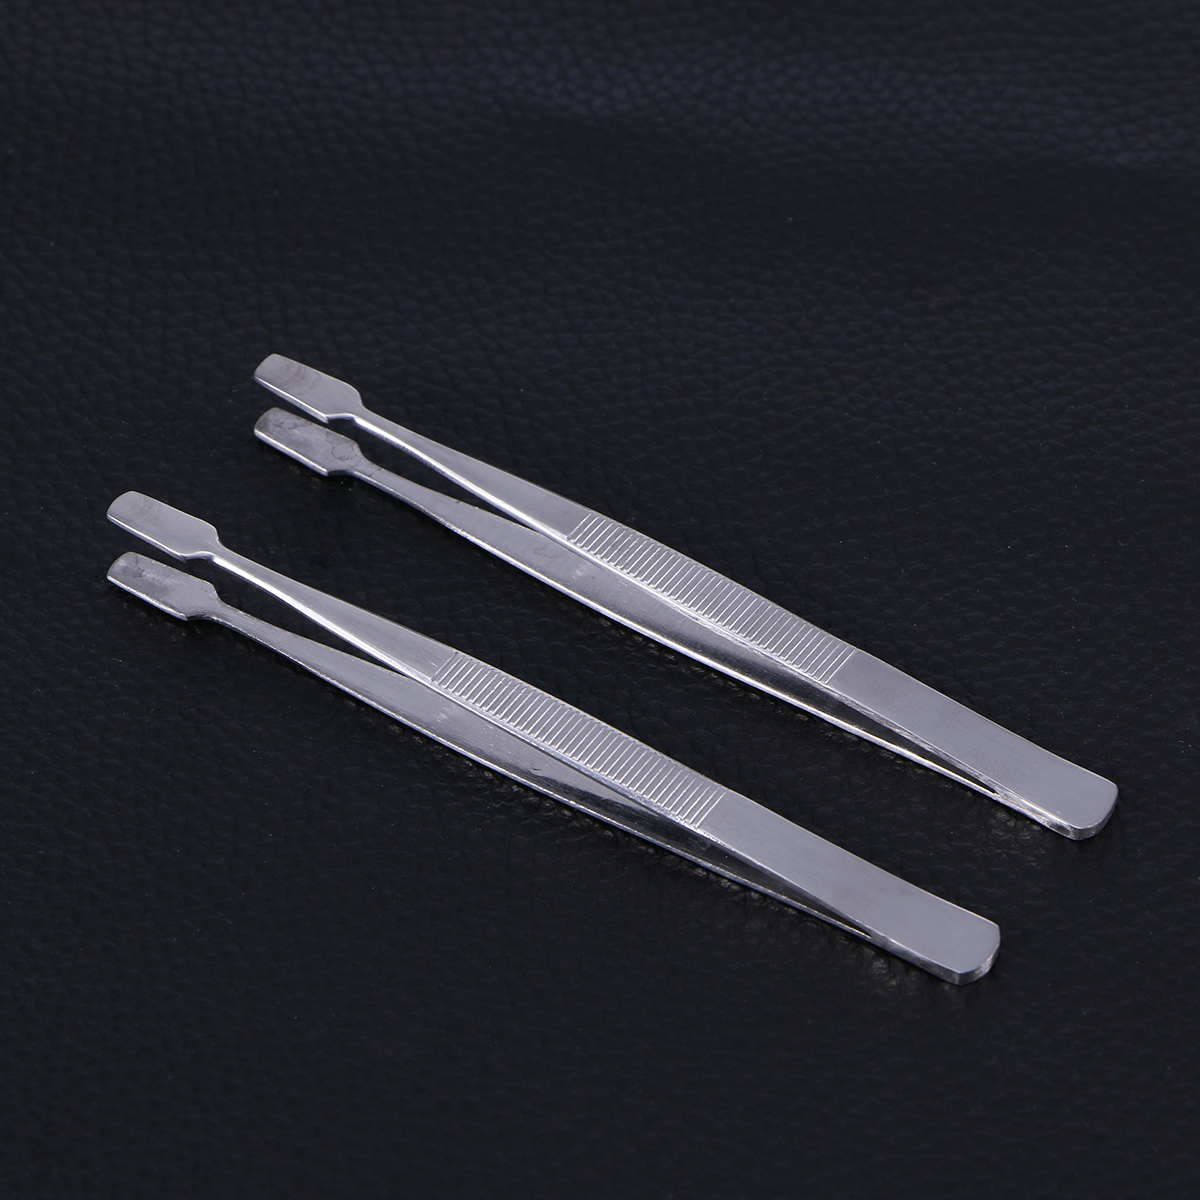 2 Pcs Silver Stamp Tweezers For Jewelry/Coin/Stamp Collection Handling Tools Collectibles Industrial Tweezers Hand Tools